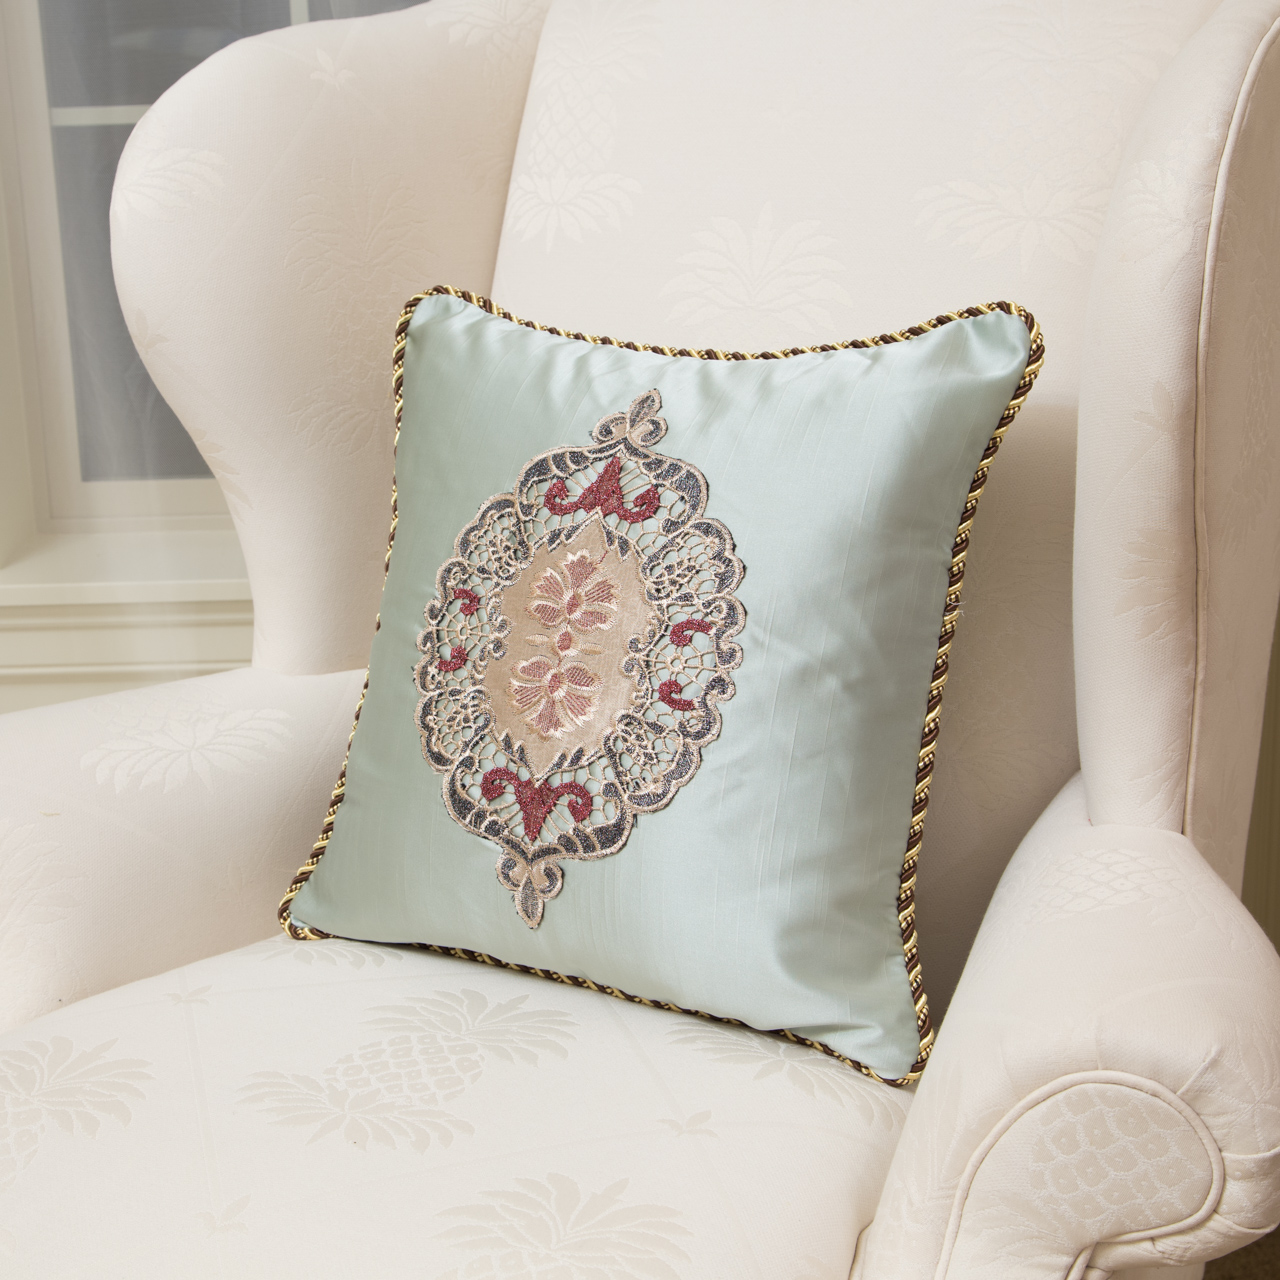 Embroidery Designs Pillow Cases